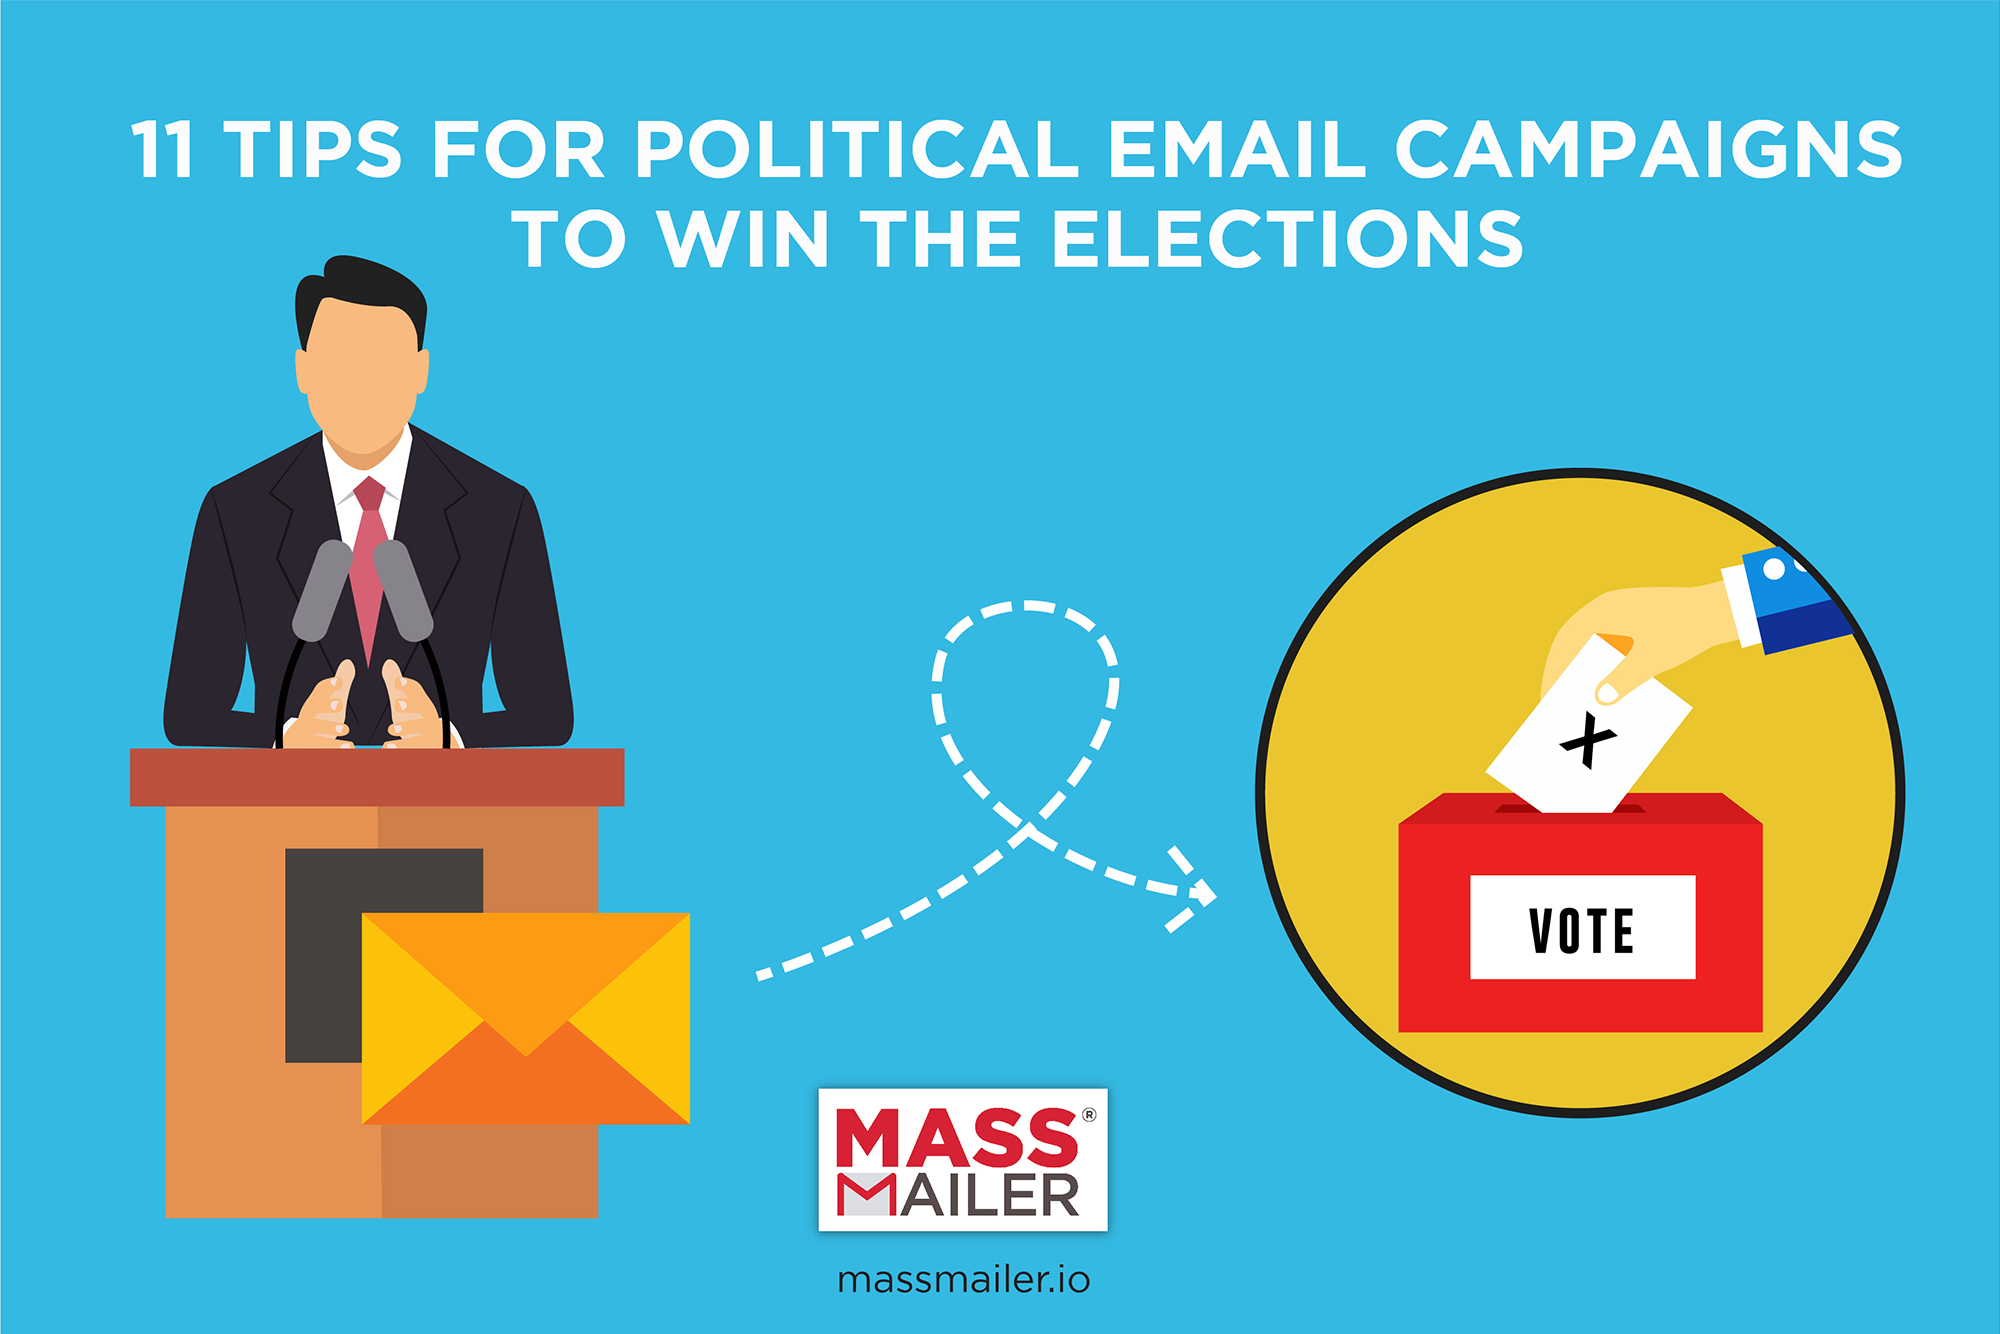 Tips for political email campaigns to win the elections